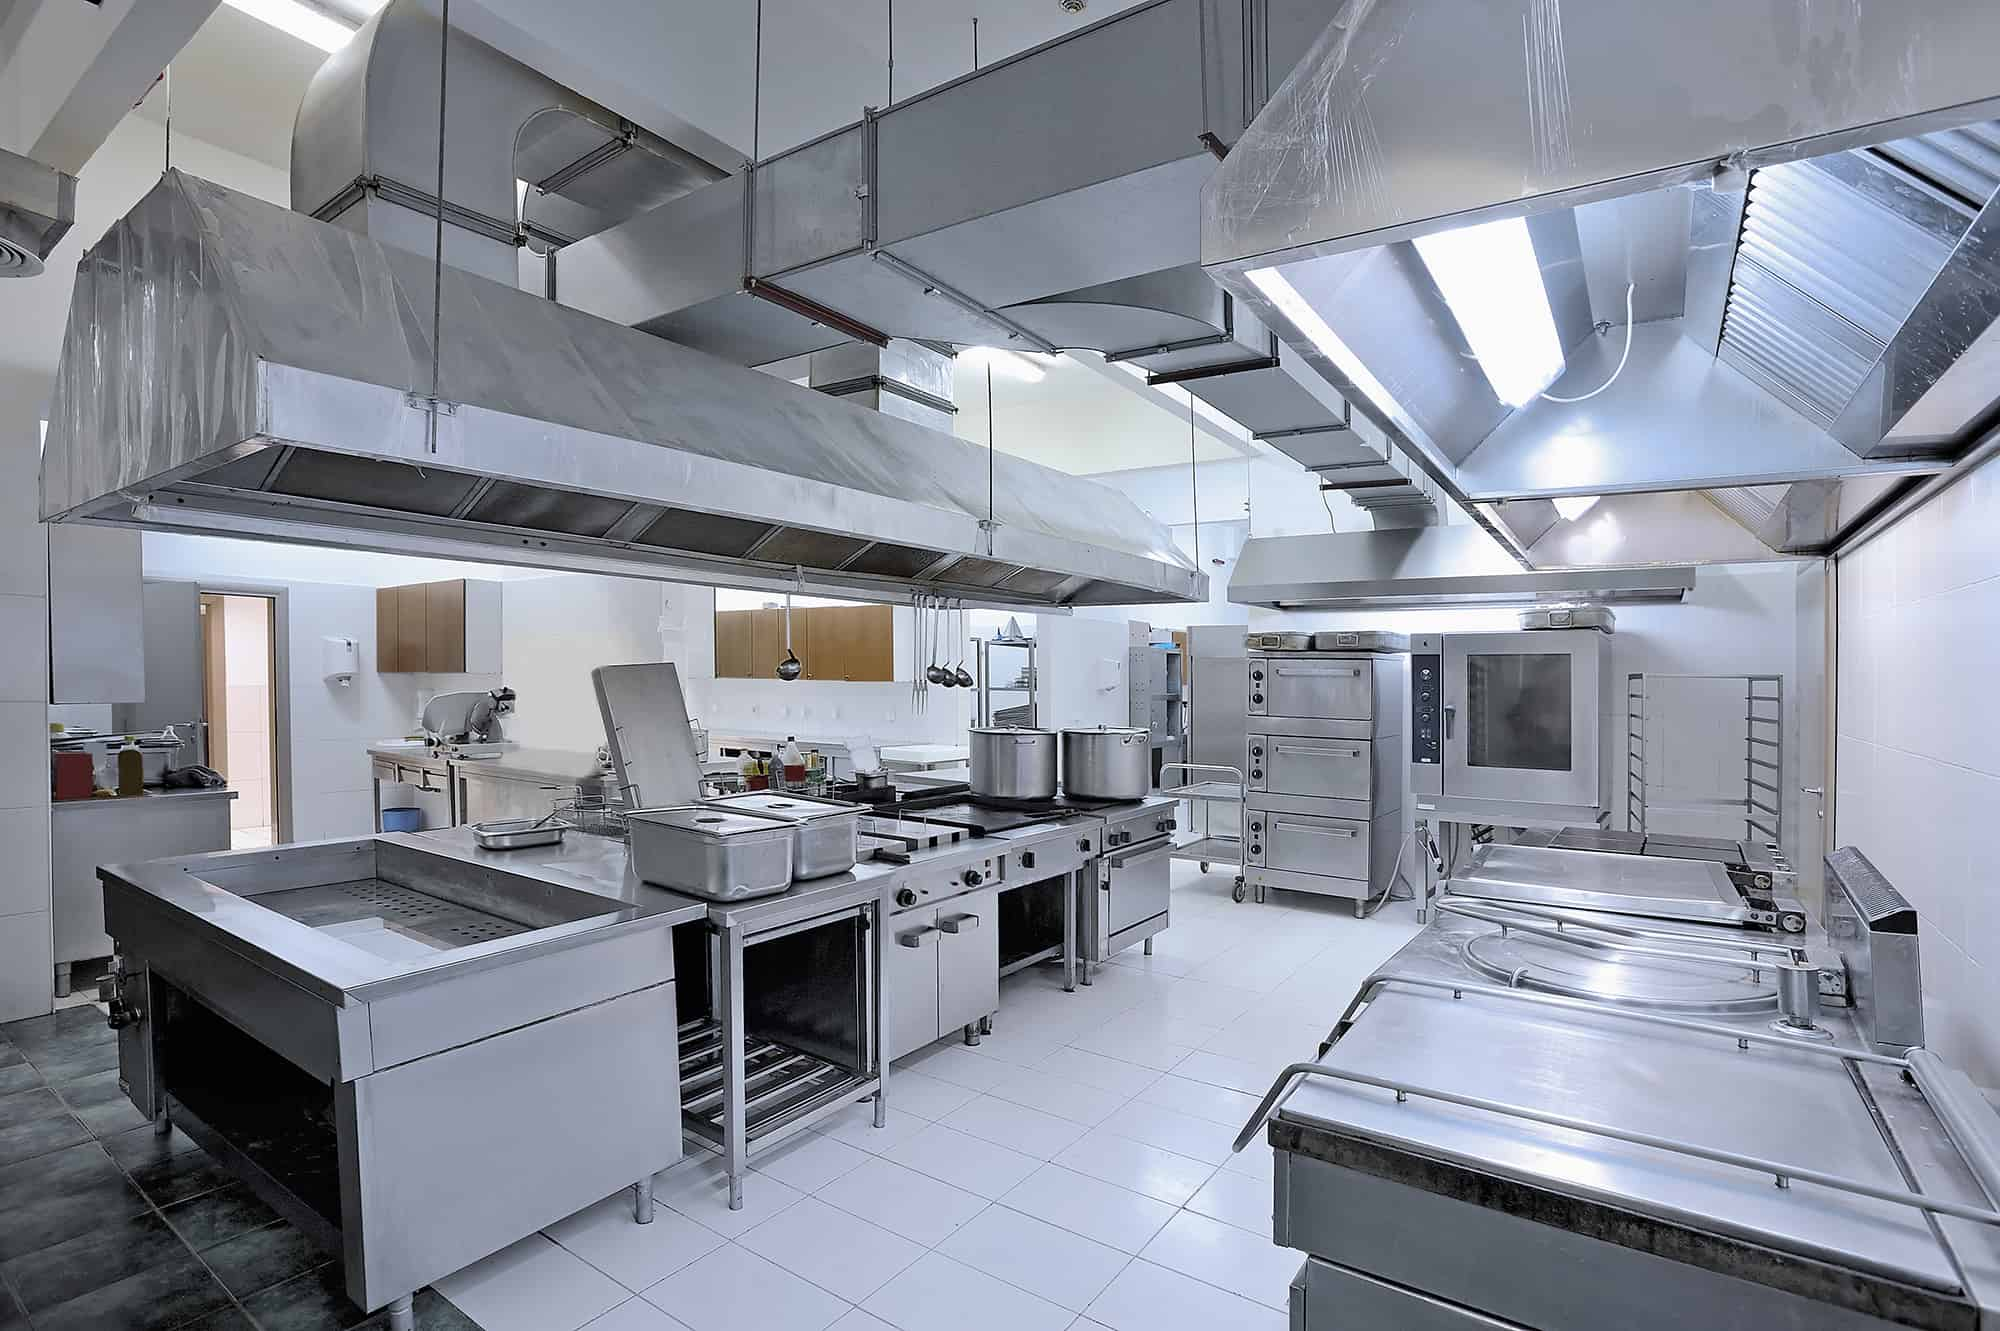 Commercial kitchens refurbishments, Commercial kitchen stainless steel appliances, commercial kitchen refurbishments Birmingham from design to completion we do the lot, White rock fitters Birmingham, Commercial kitchens, Wet rooms, Toilet refurbishment, Refurbishment contractors, Birmingham ,Bathroom Refurbishment, Disabled toilet refurbishments, Refurbishment specialists Birmingham, Refurbishment contractors Birmingham, Washroom refurbishments, treatment rooms, we also fit hygienic wall cladding, Vinyl floors ,IPS Panels, Toilet cubicles Doc m pack disabled toilets